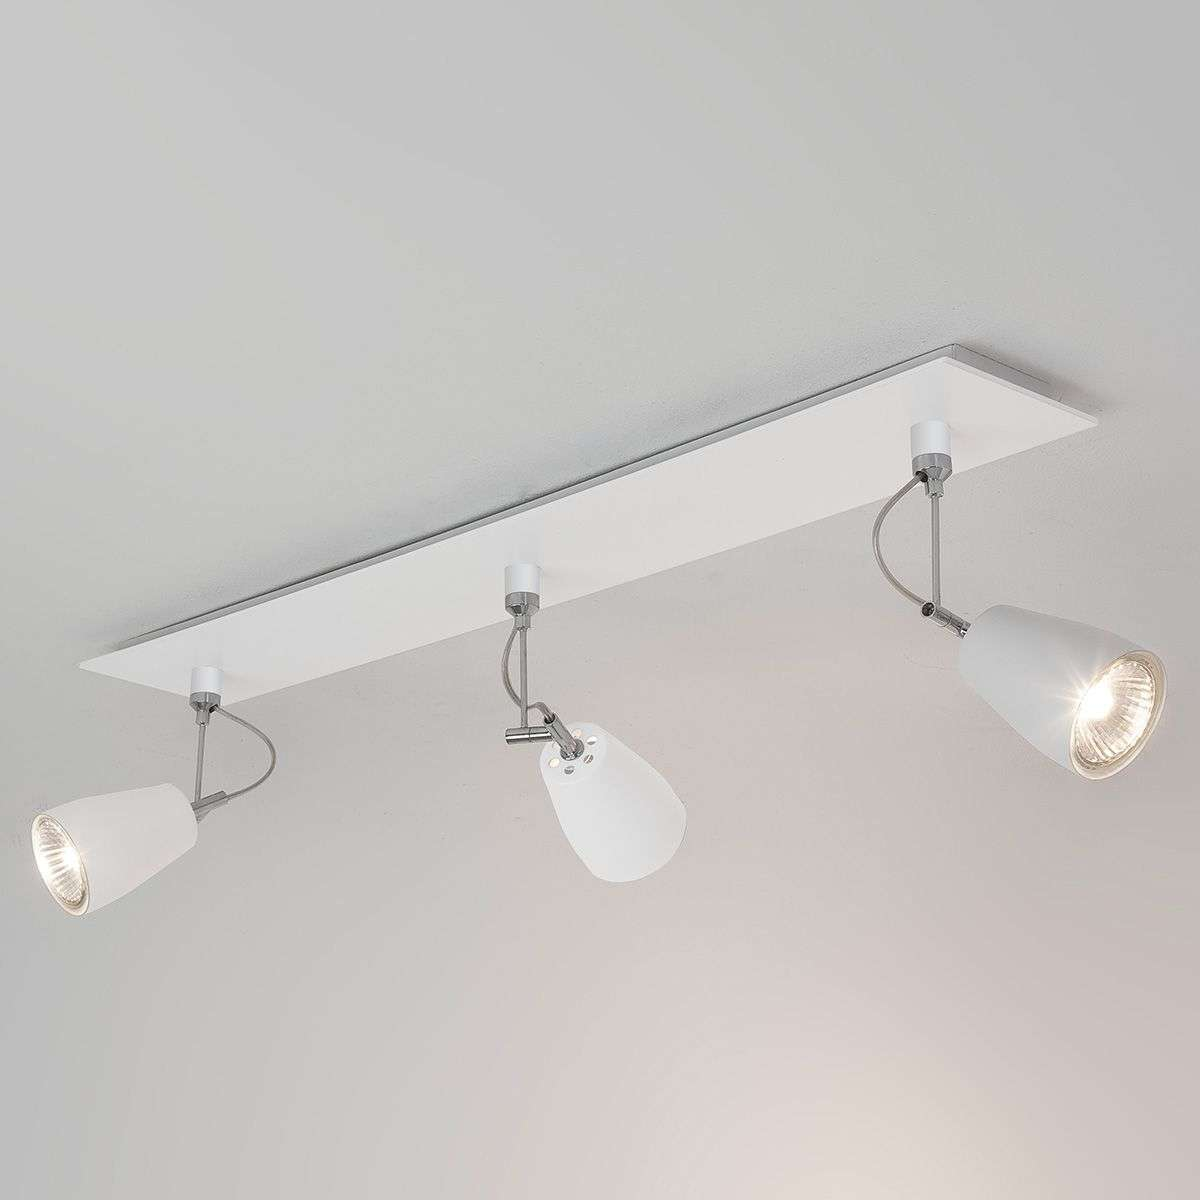 Polar Ceiling Spotlight Three Bulbs Decorative-1020264-32